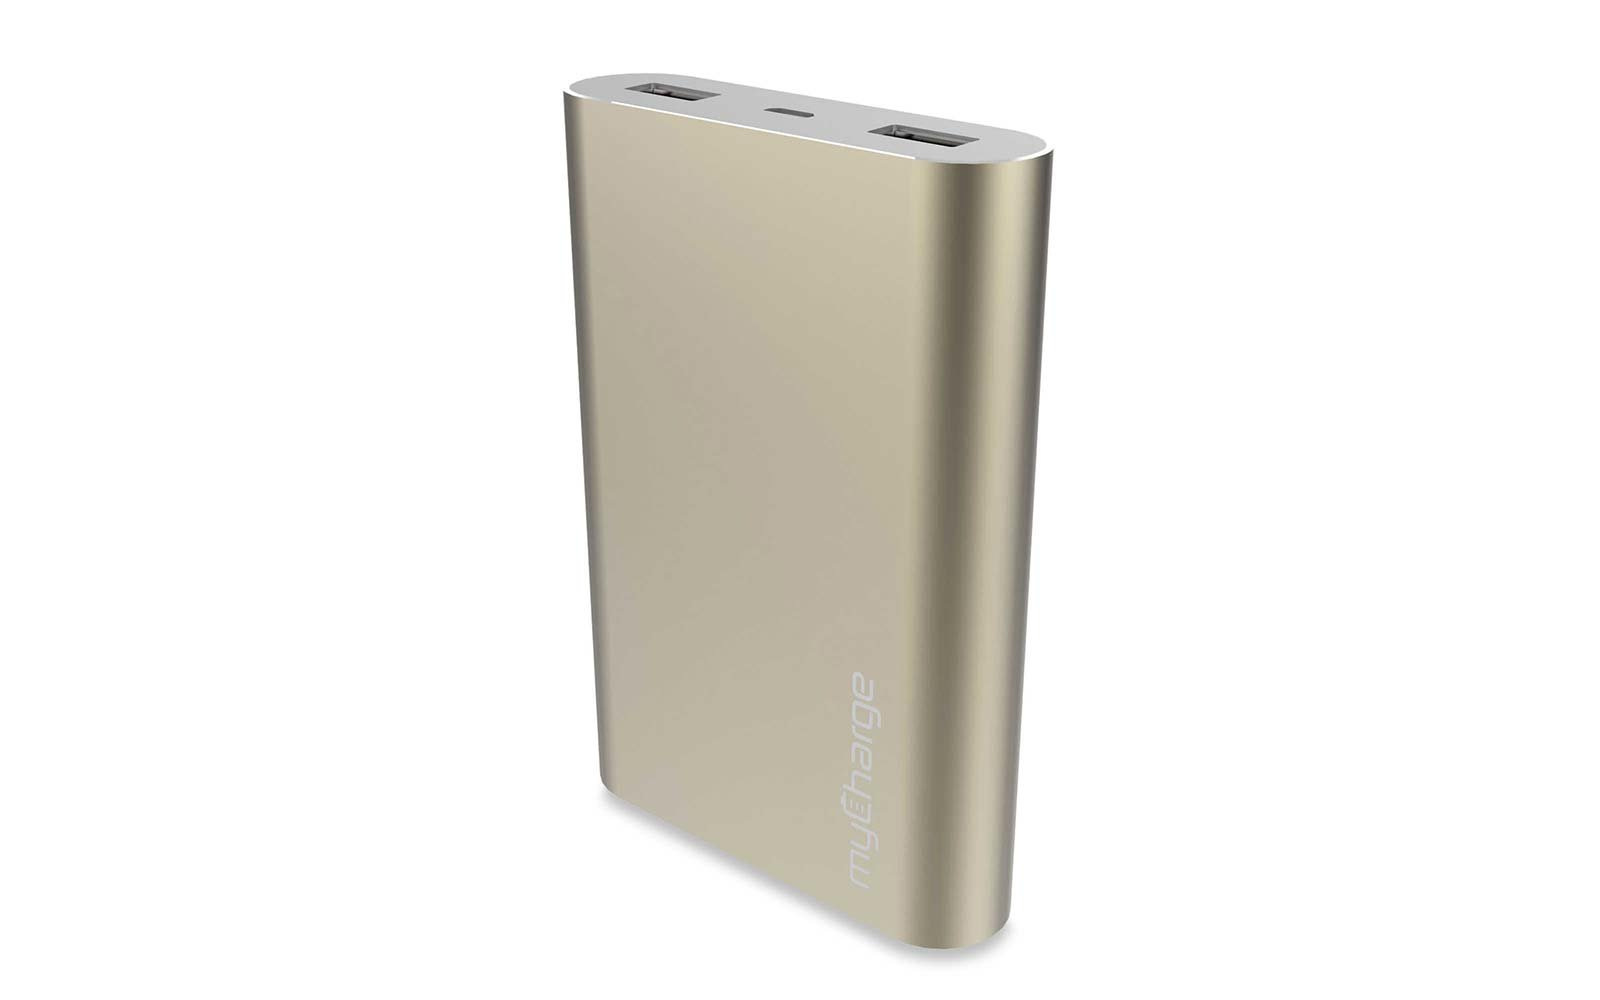 travel portable phone battery charger mycharge - Portable